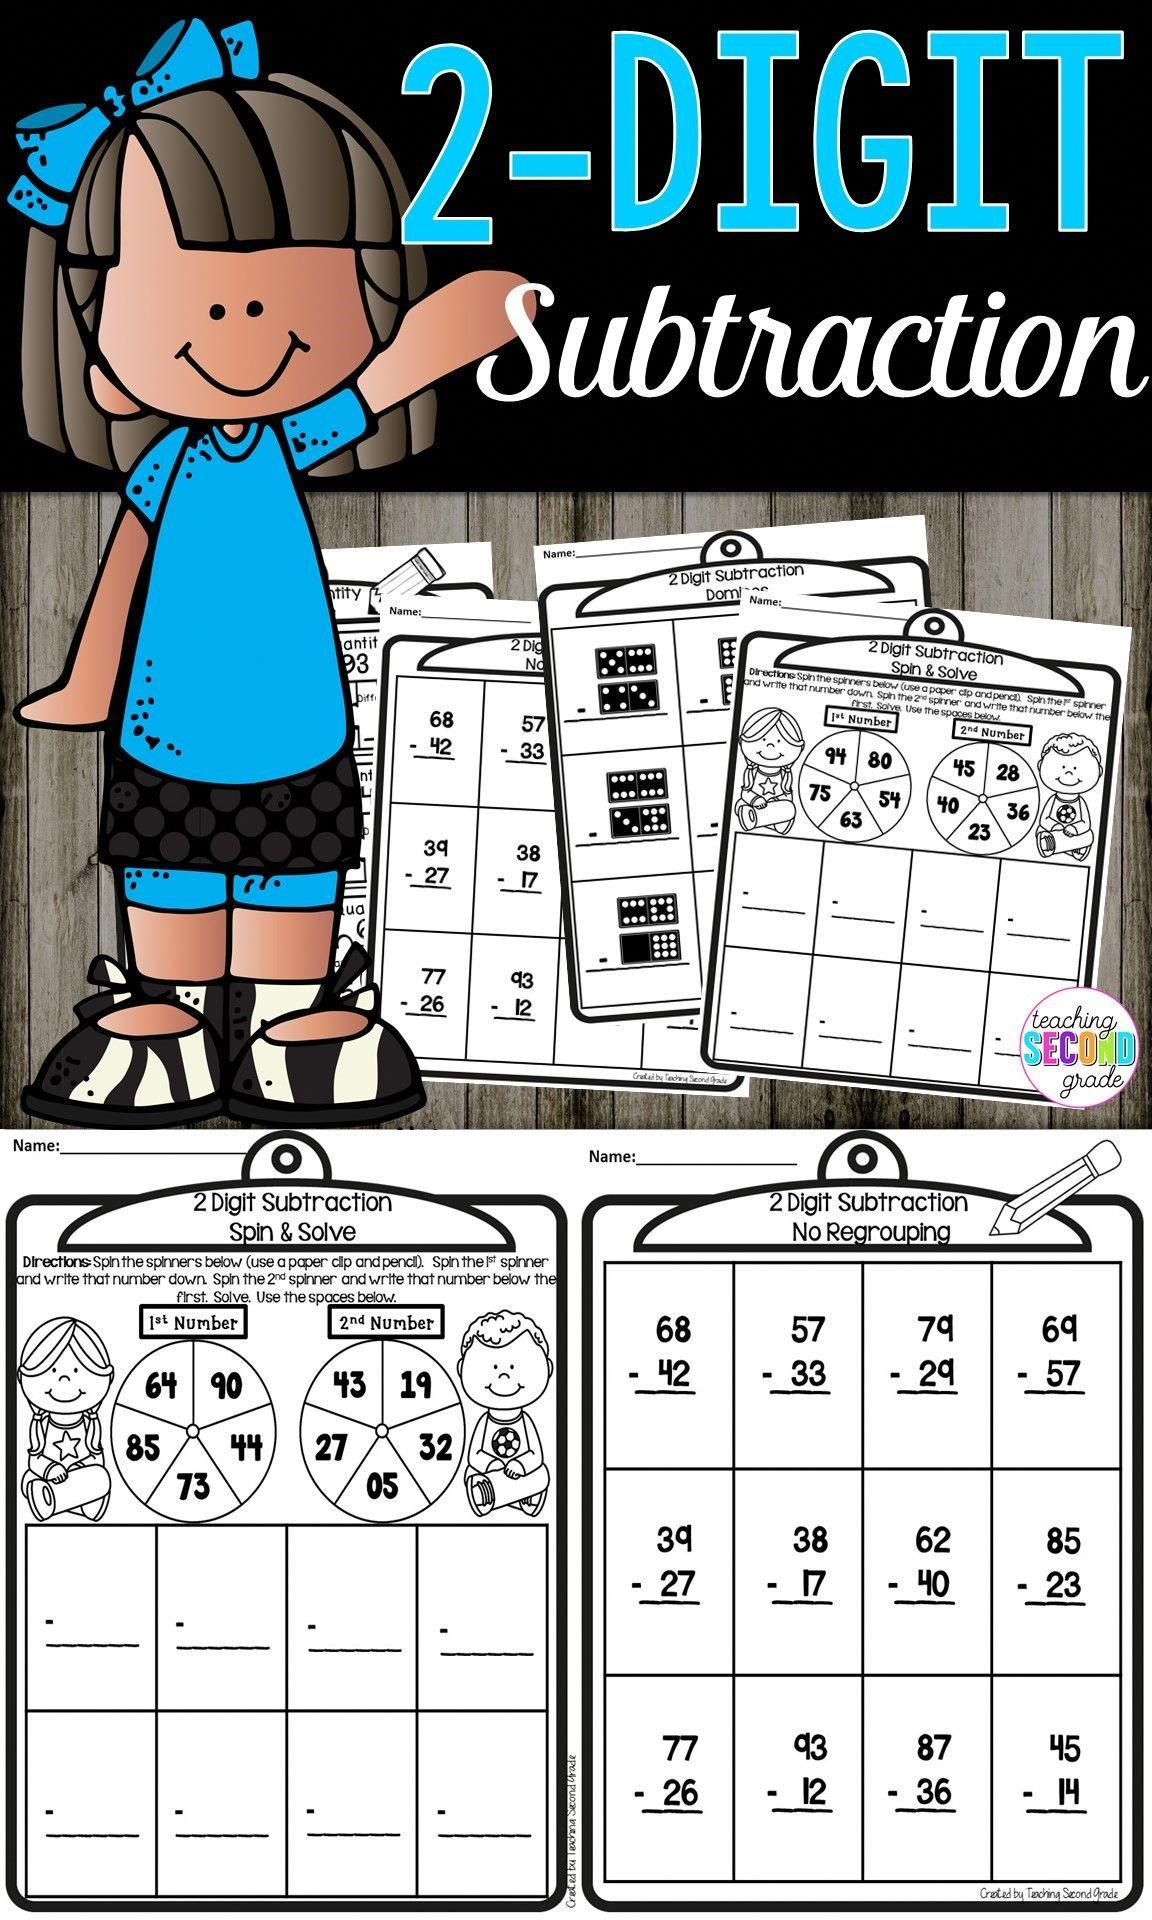 15 Best 2nd Grade Writing Worksheets Printable Images On